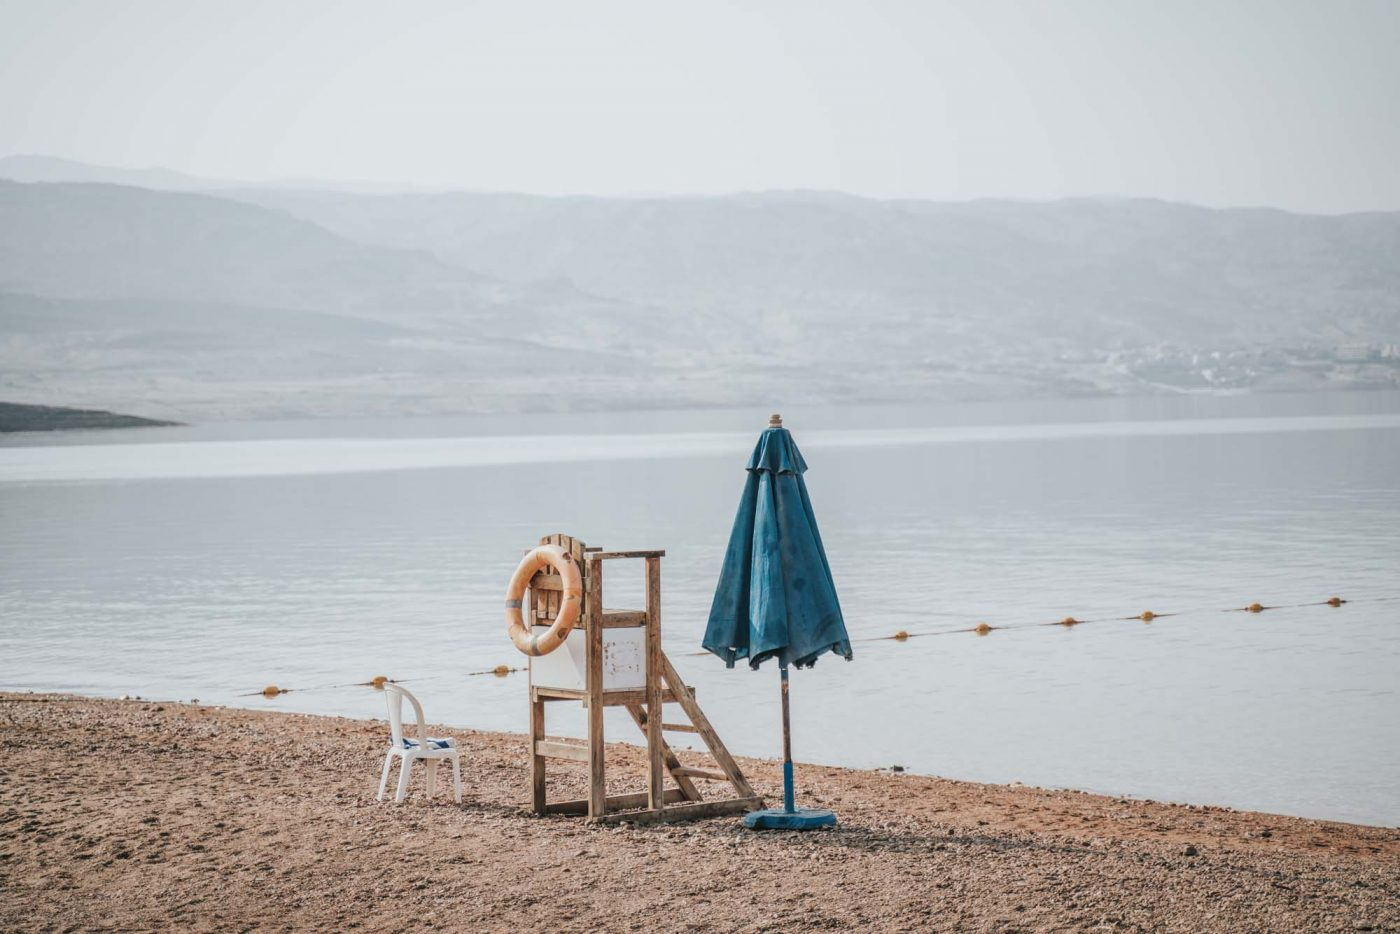 Jordan Tour: Lifeguard station on a private beach on the Jordanian side of the Dead Sea